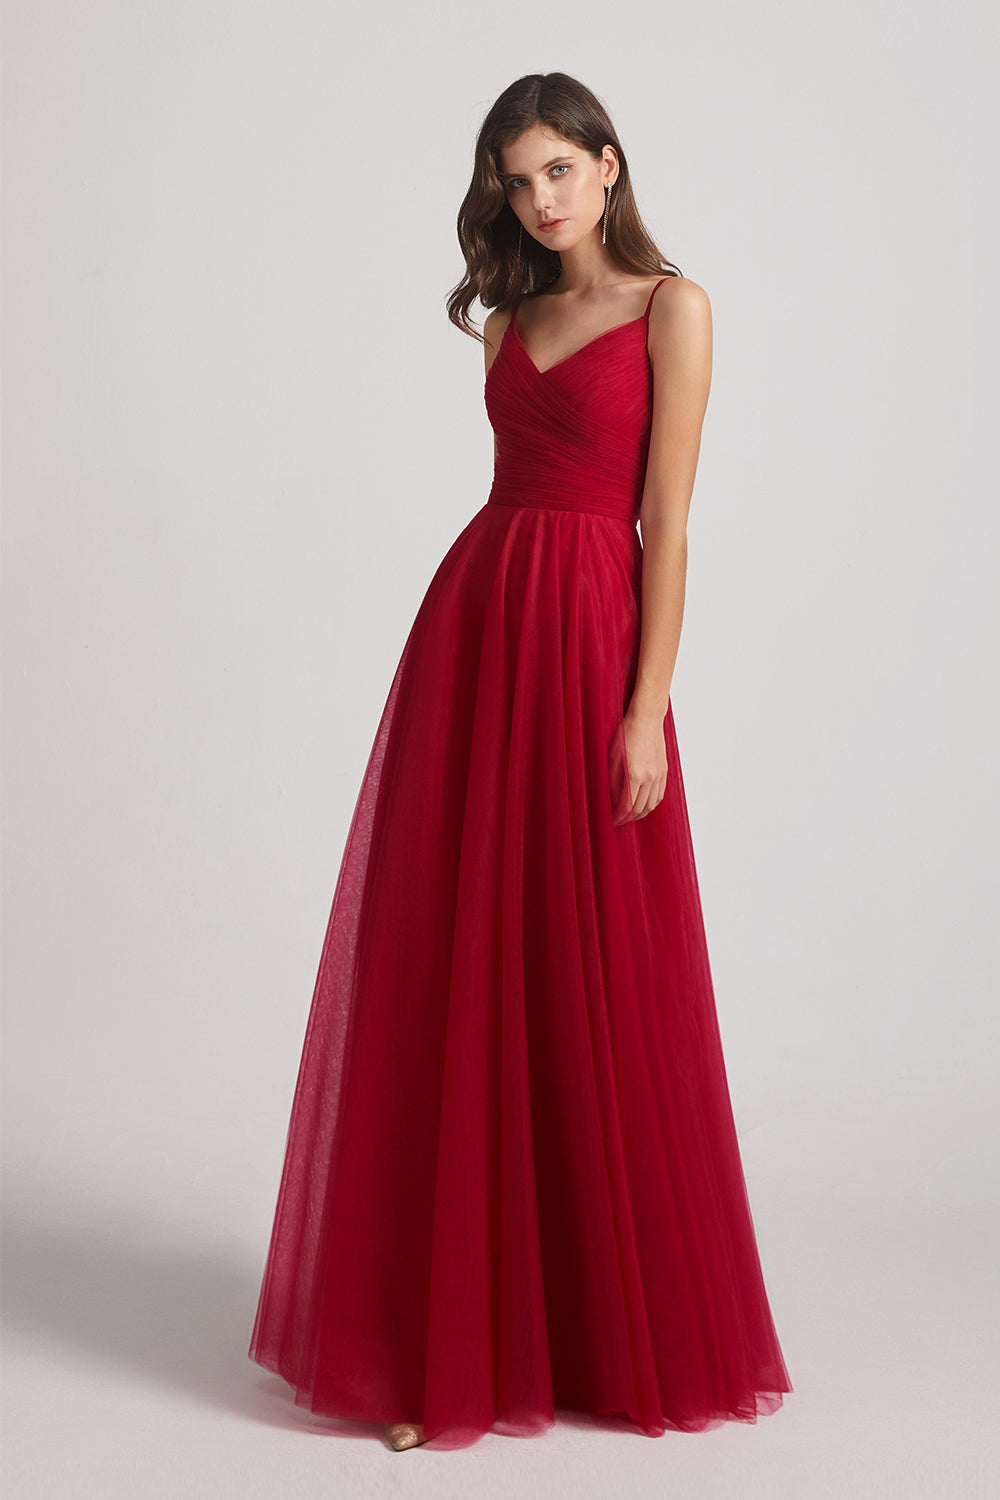 affordable tulle puffy prom dresses